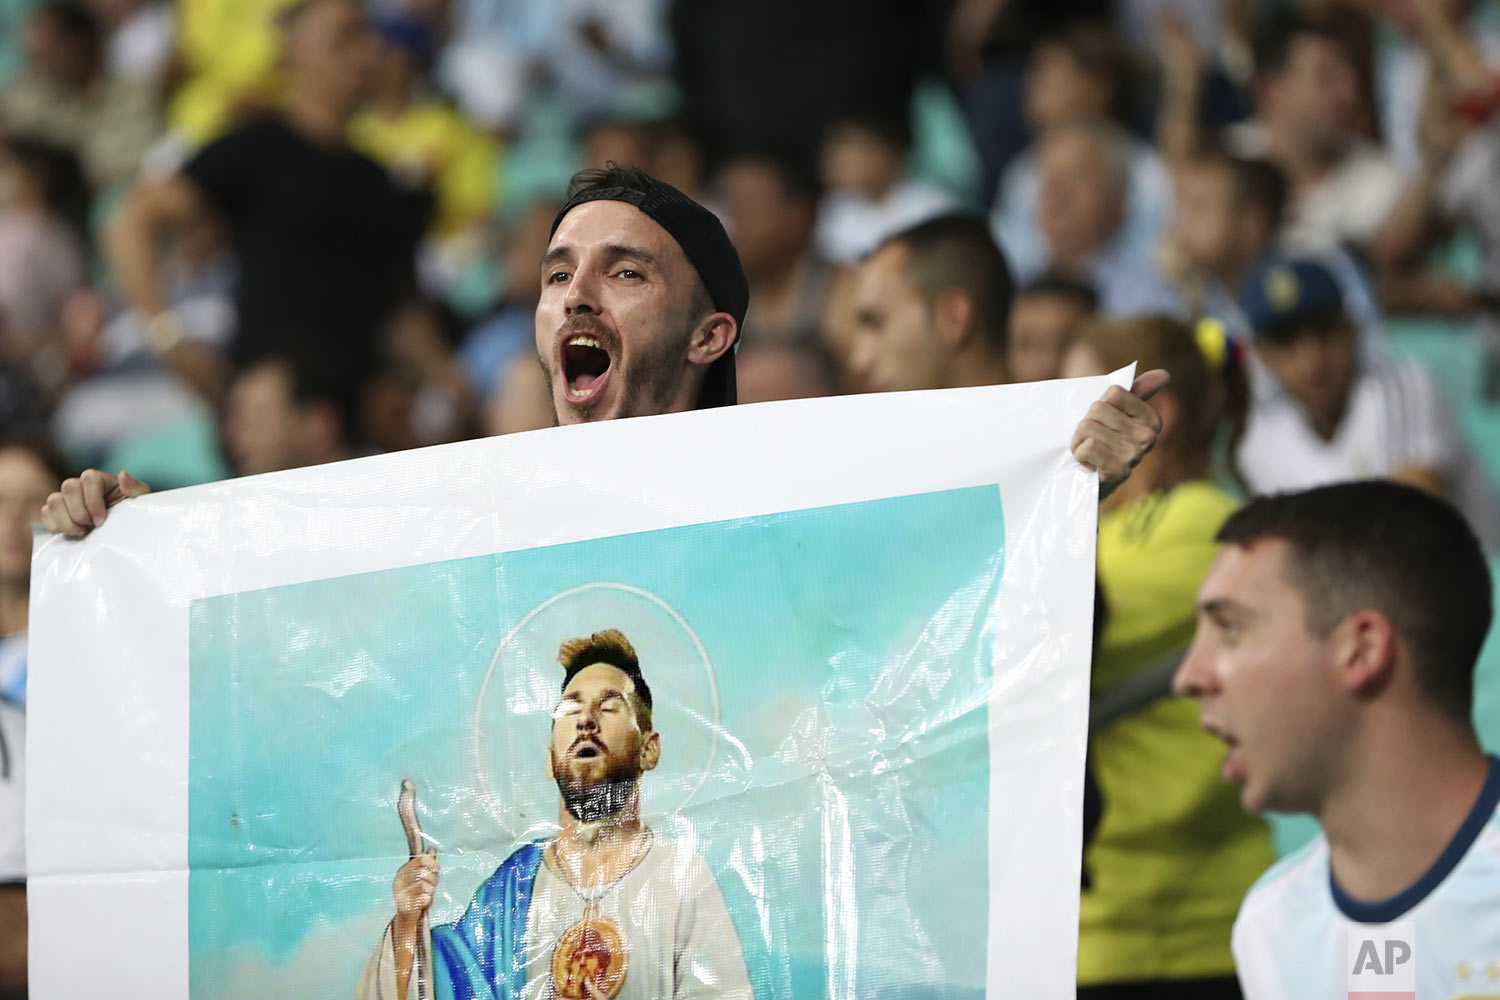 A fan holds an illustration of Argentina's Lionel Messi as a saint during a Copa America Group B soccer match between Argentina and Colombia at the Arena Fonte Nova in Salvador, Brazil, Saturday, June 15, 2019. (AP Photo/Ricardo Mazalan)